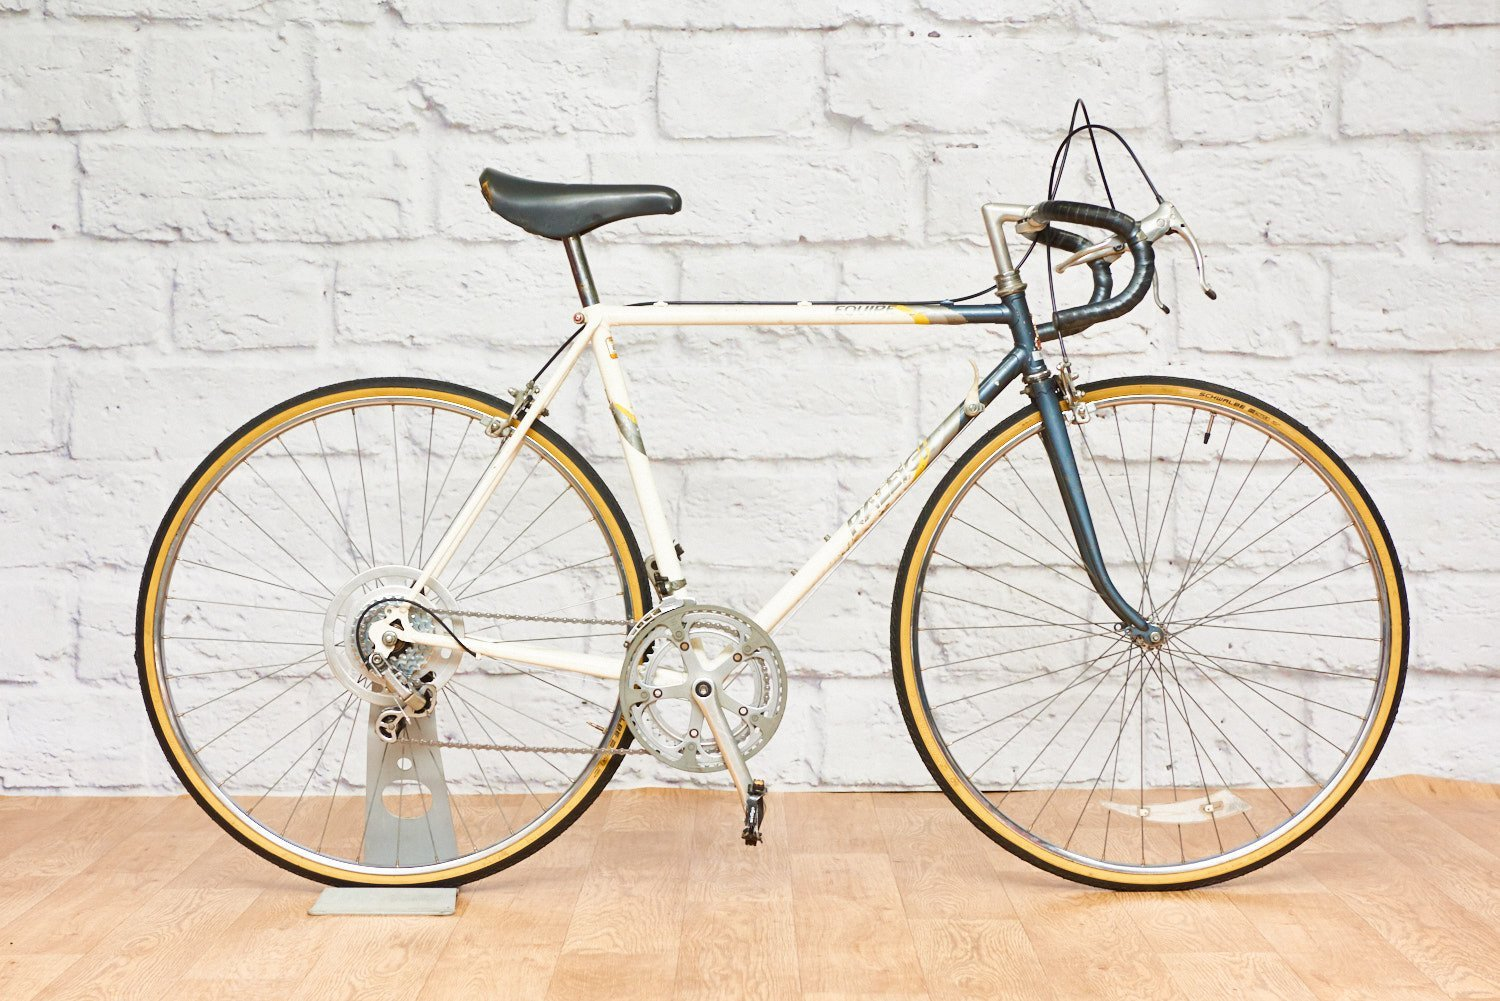 Raleigh Equipe Vintage Road Racing Bike (53cm frame)